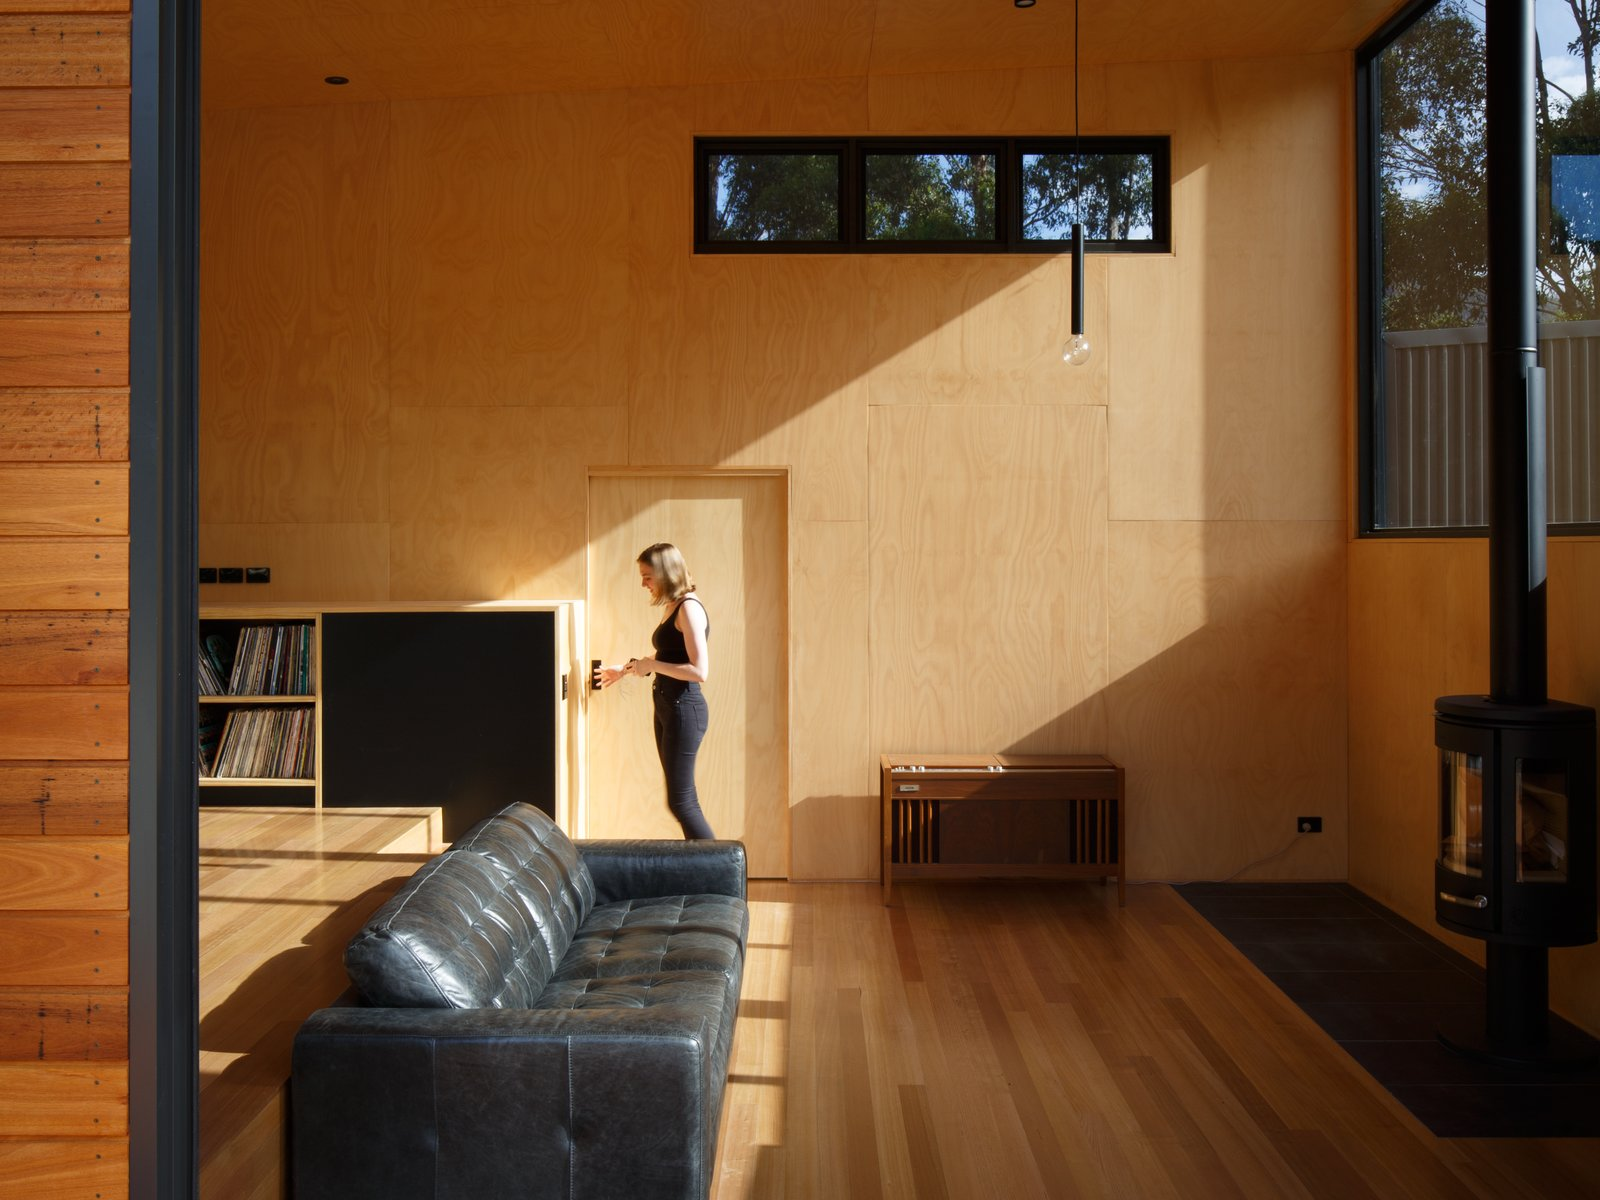 A Melbourne Couple Escape City Living in This Tasmanian Retreat